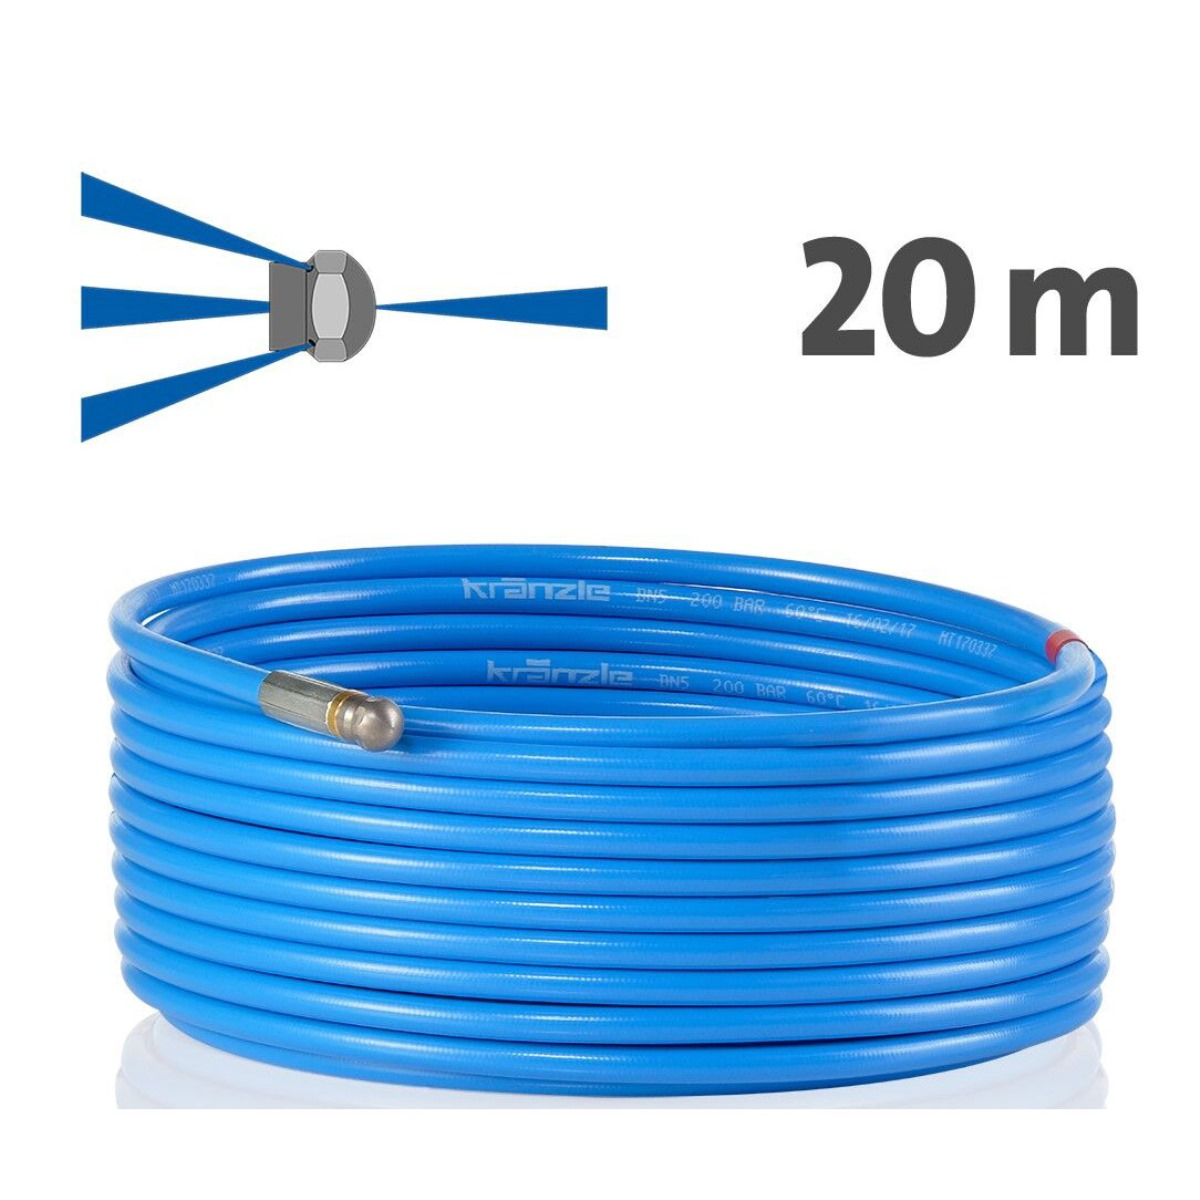 410582-F - Drain Cleaning Hose 20m